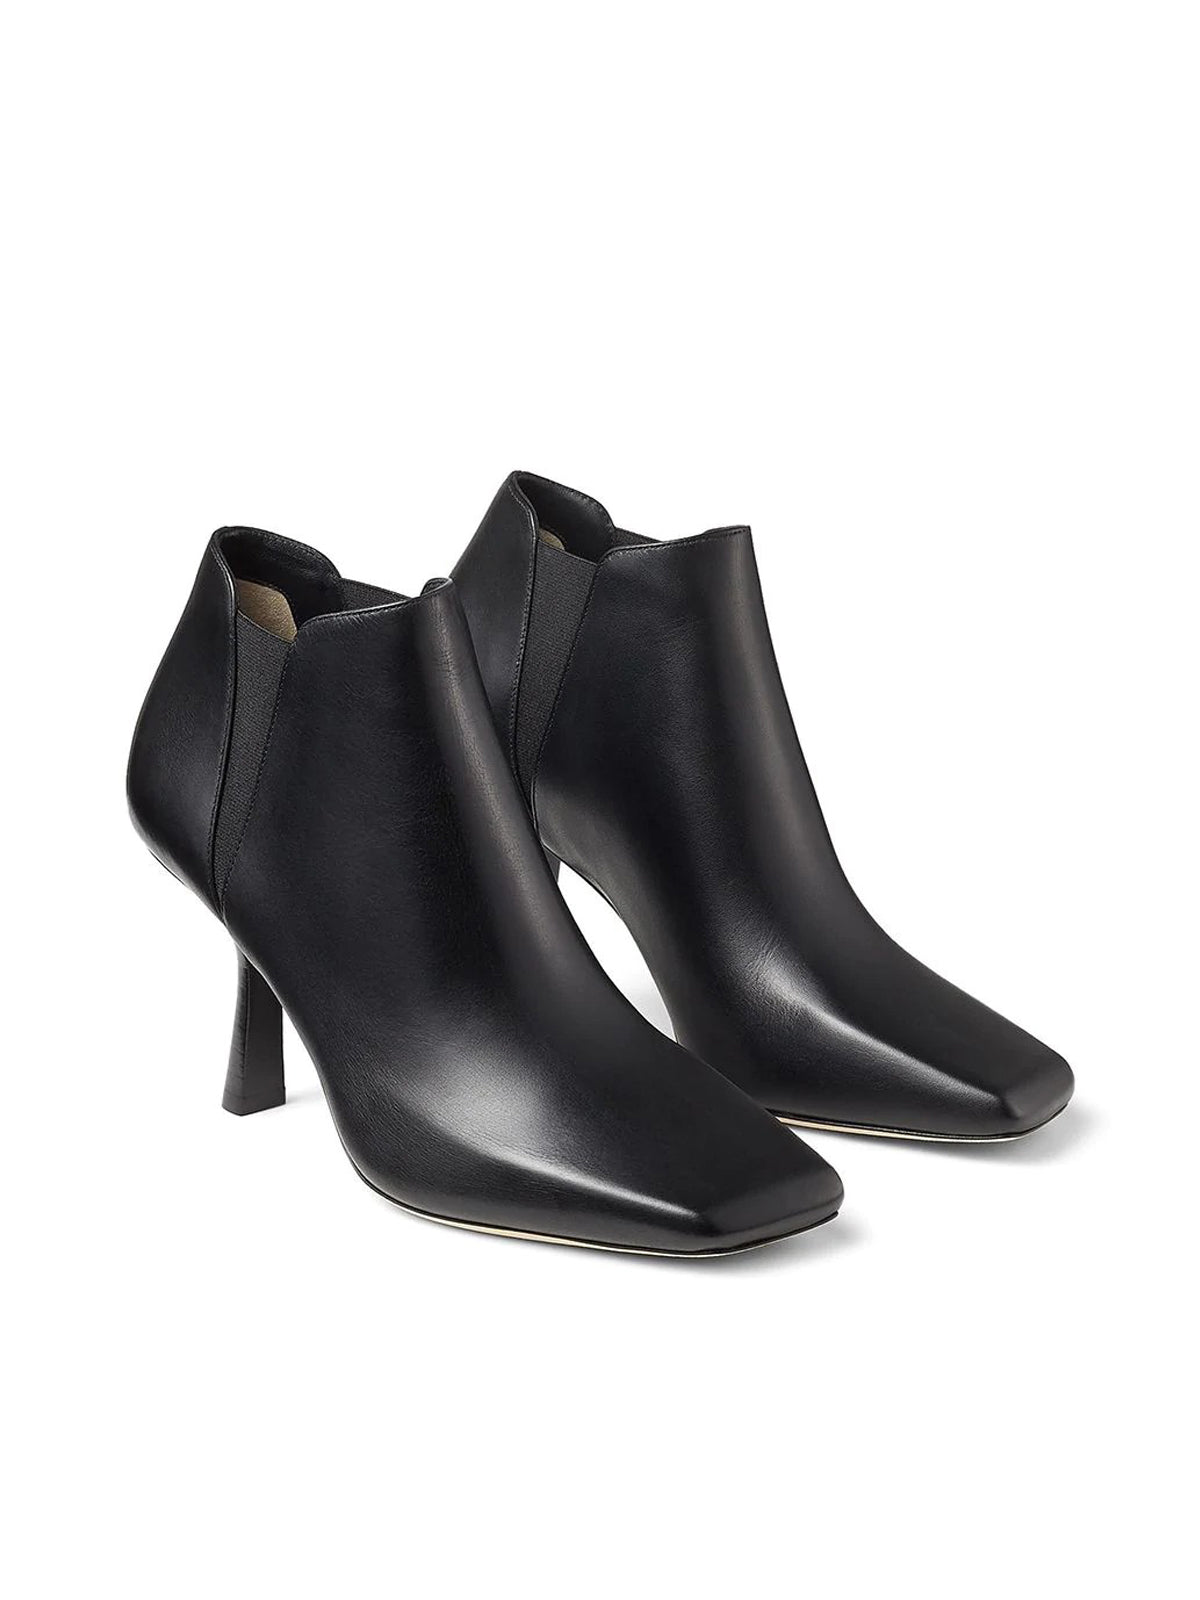 Marcelin squared toe boots.